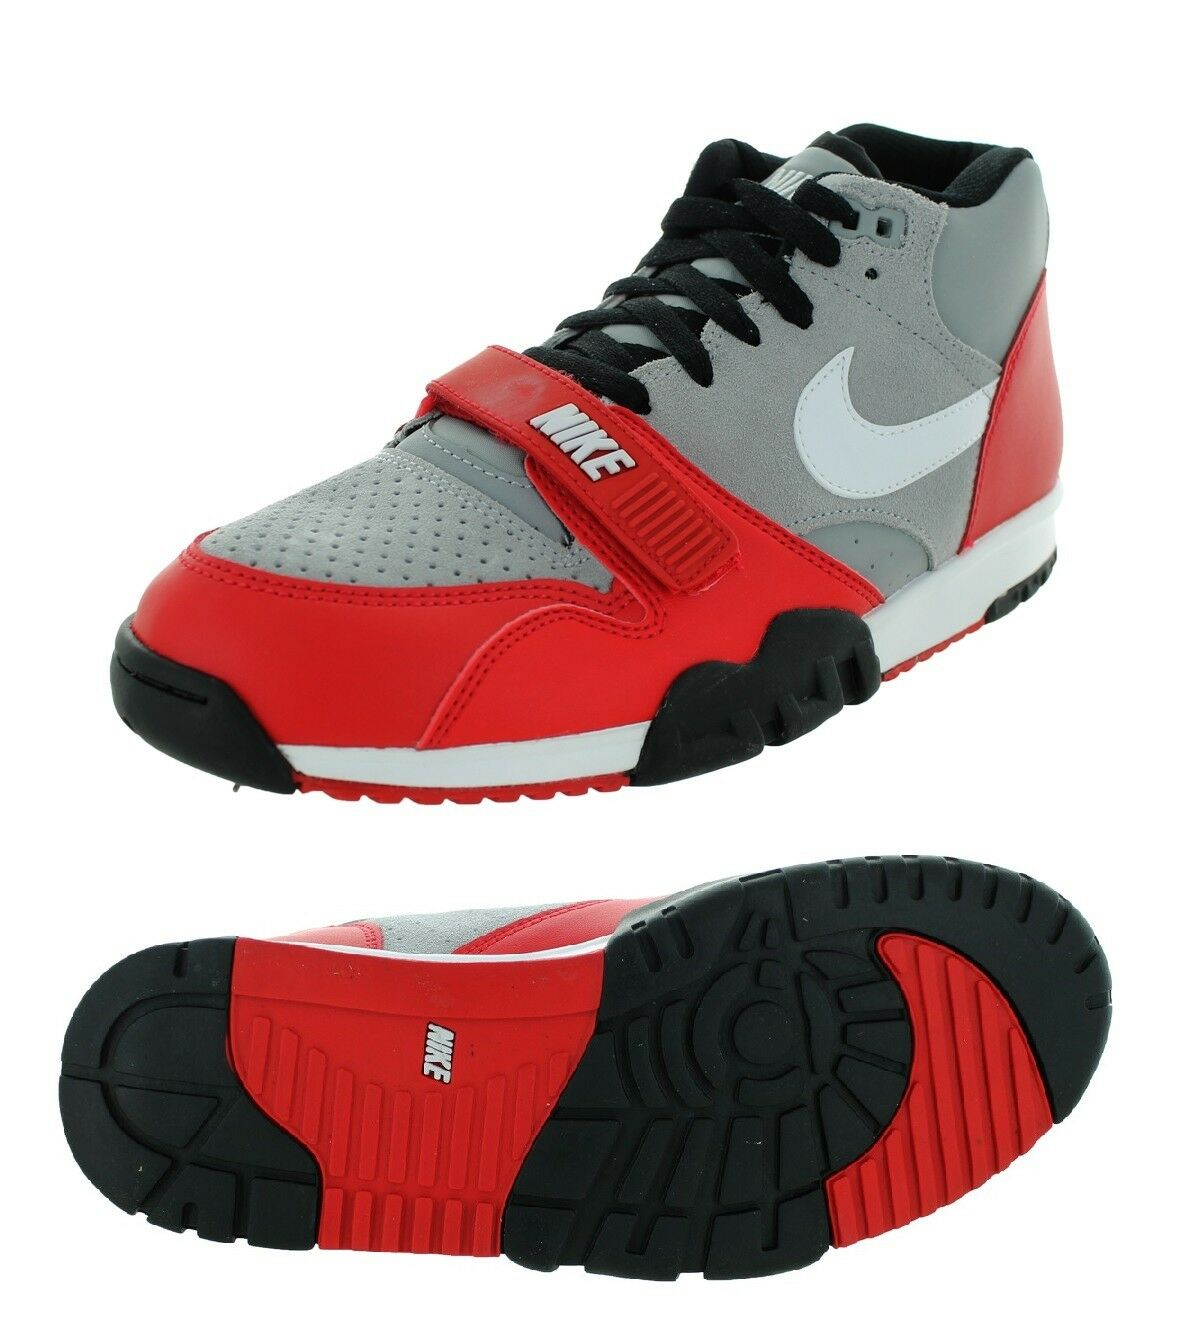 NEW NIKE AIR TRAINER 1 MID 317554-006 OHIO STATE GREY WHITE RED BLACK SZ 12